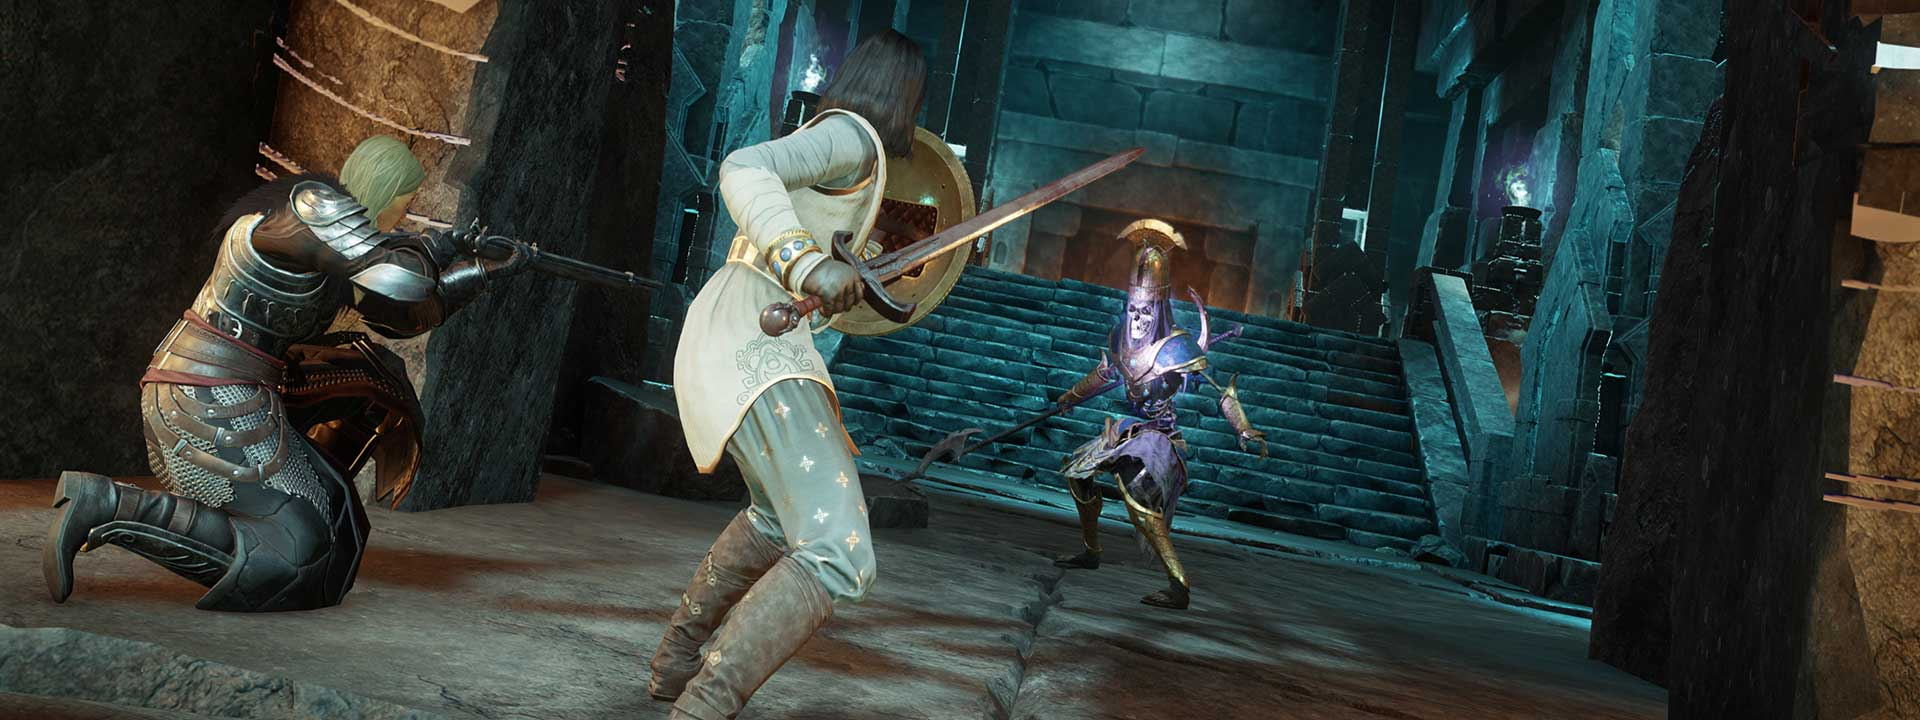 Two adventurers in medium and heavy armor face an Ancient Guardian in a blue-lit hallway.